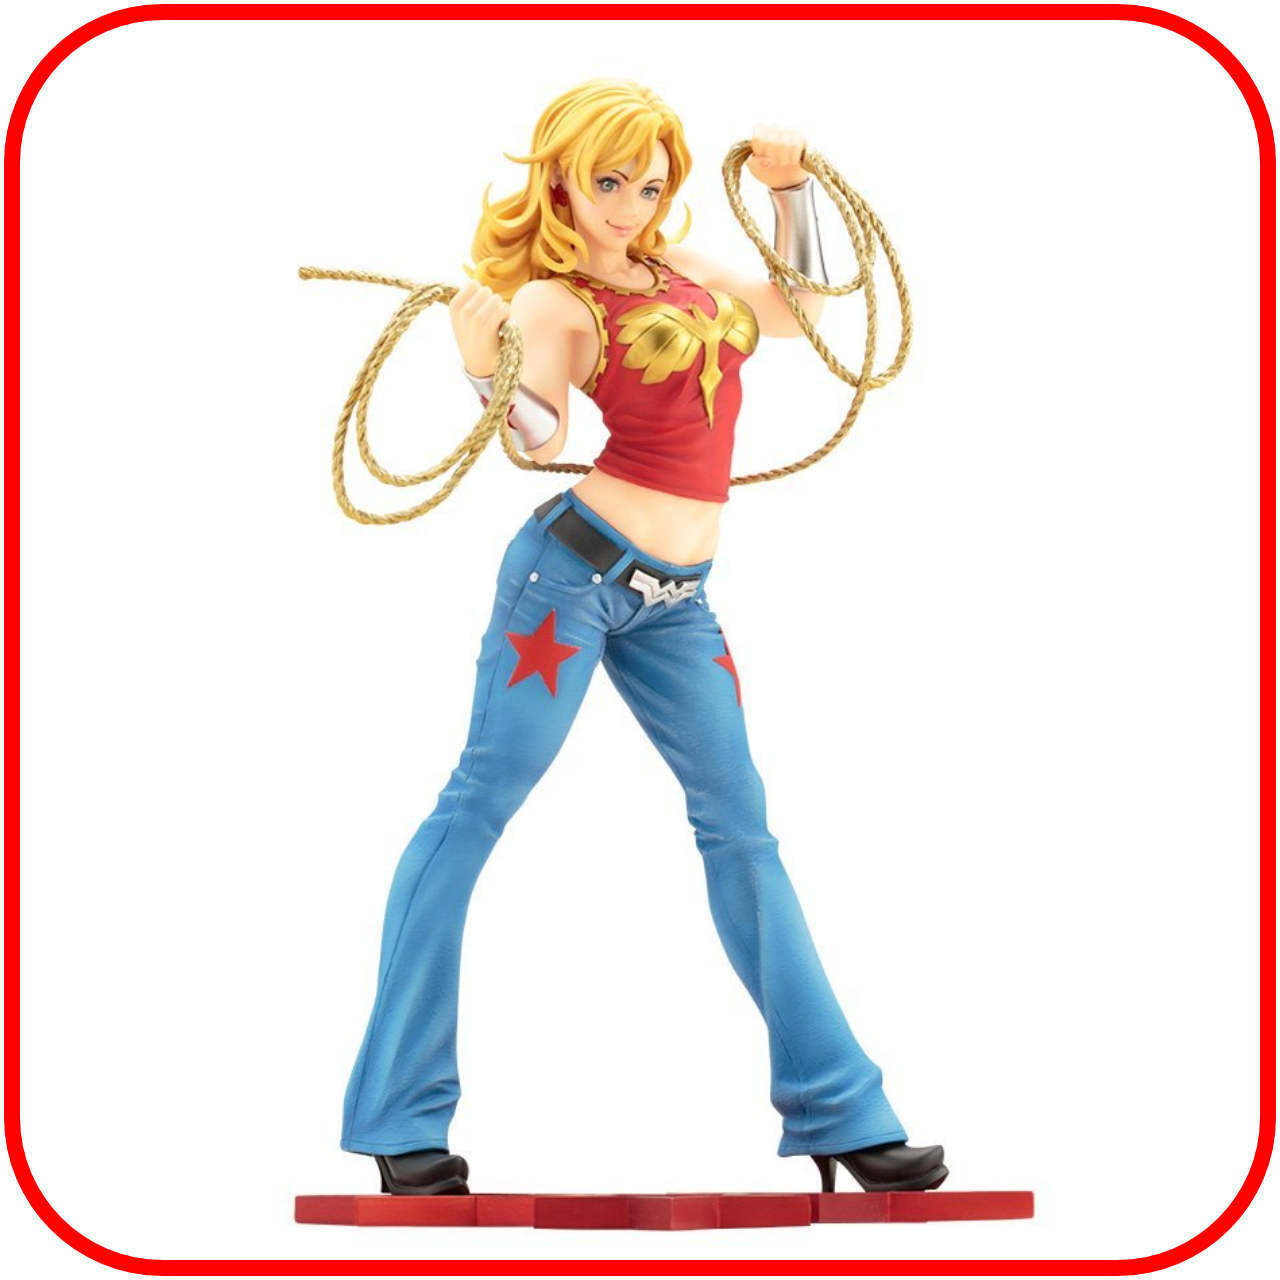 DC Comics Wonder Girl Bishoujo 1 7 Scale Figure Statue by Kotobukiya